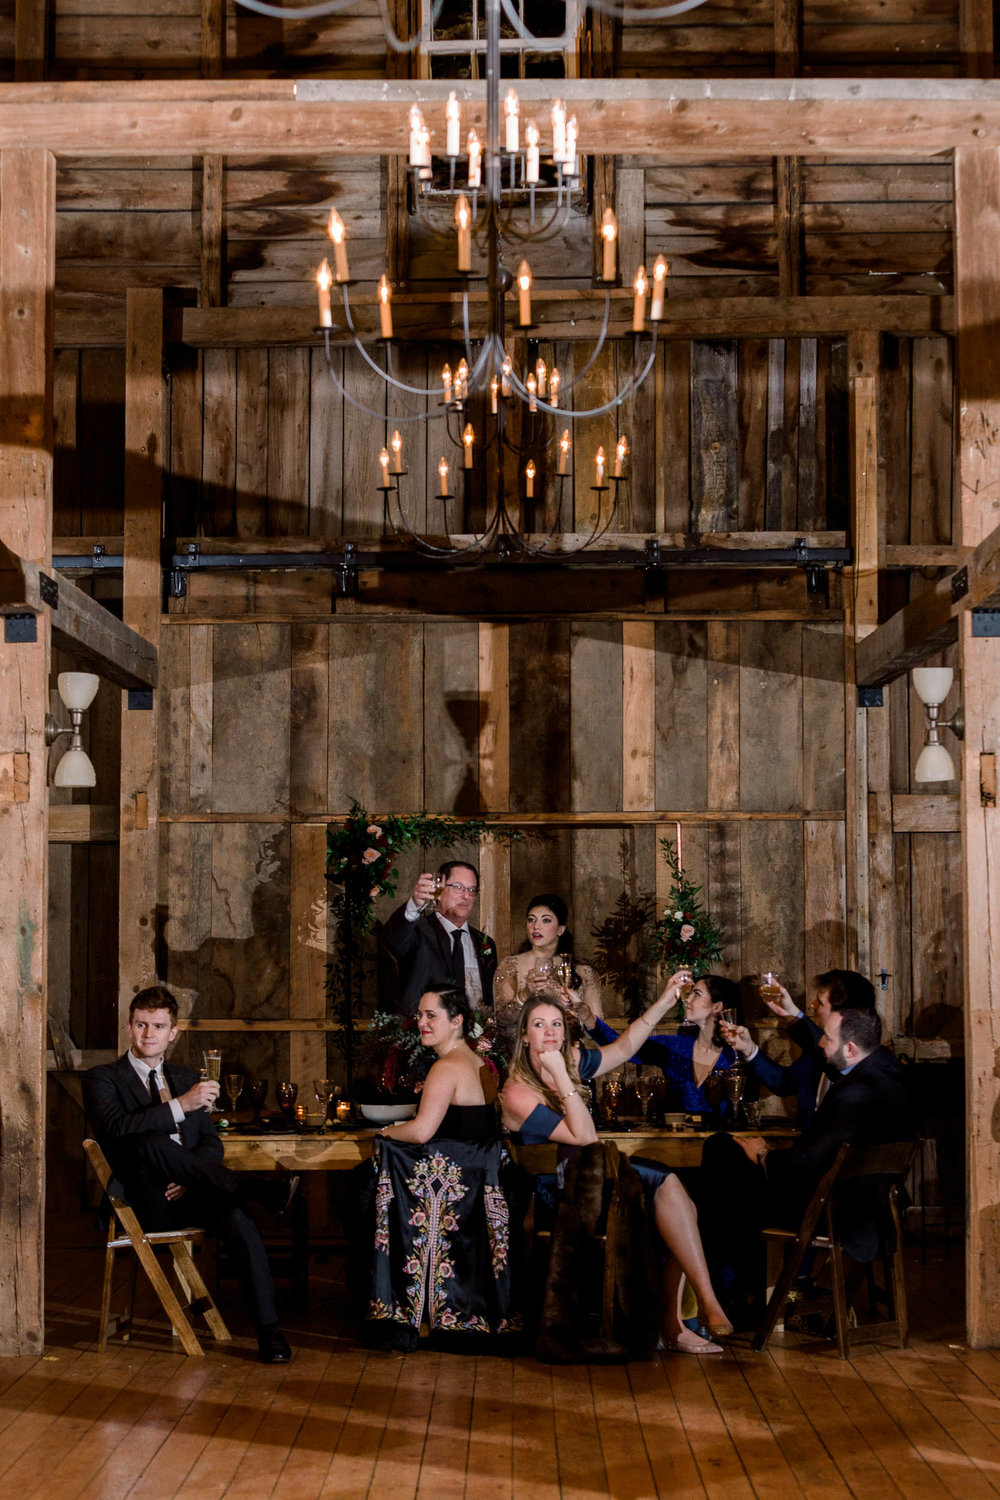 J+J_Barn at Walnut Hill_Portland Maine Wedding_Buena Lane Photography_112718_SJ_204-Edit.jpg